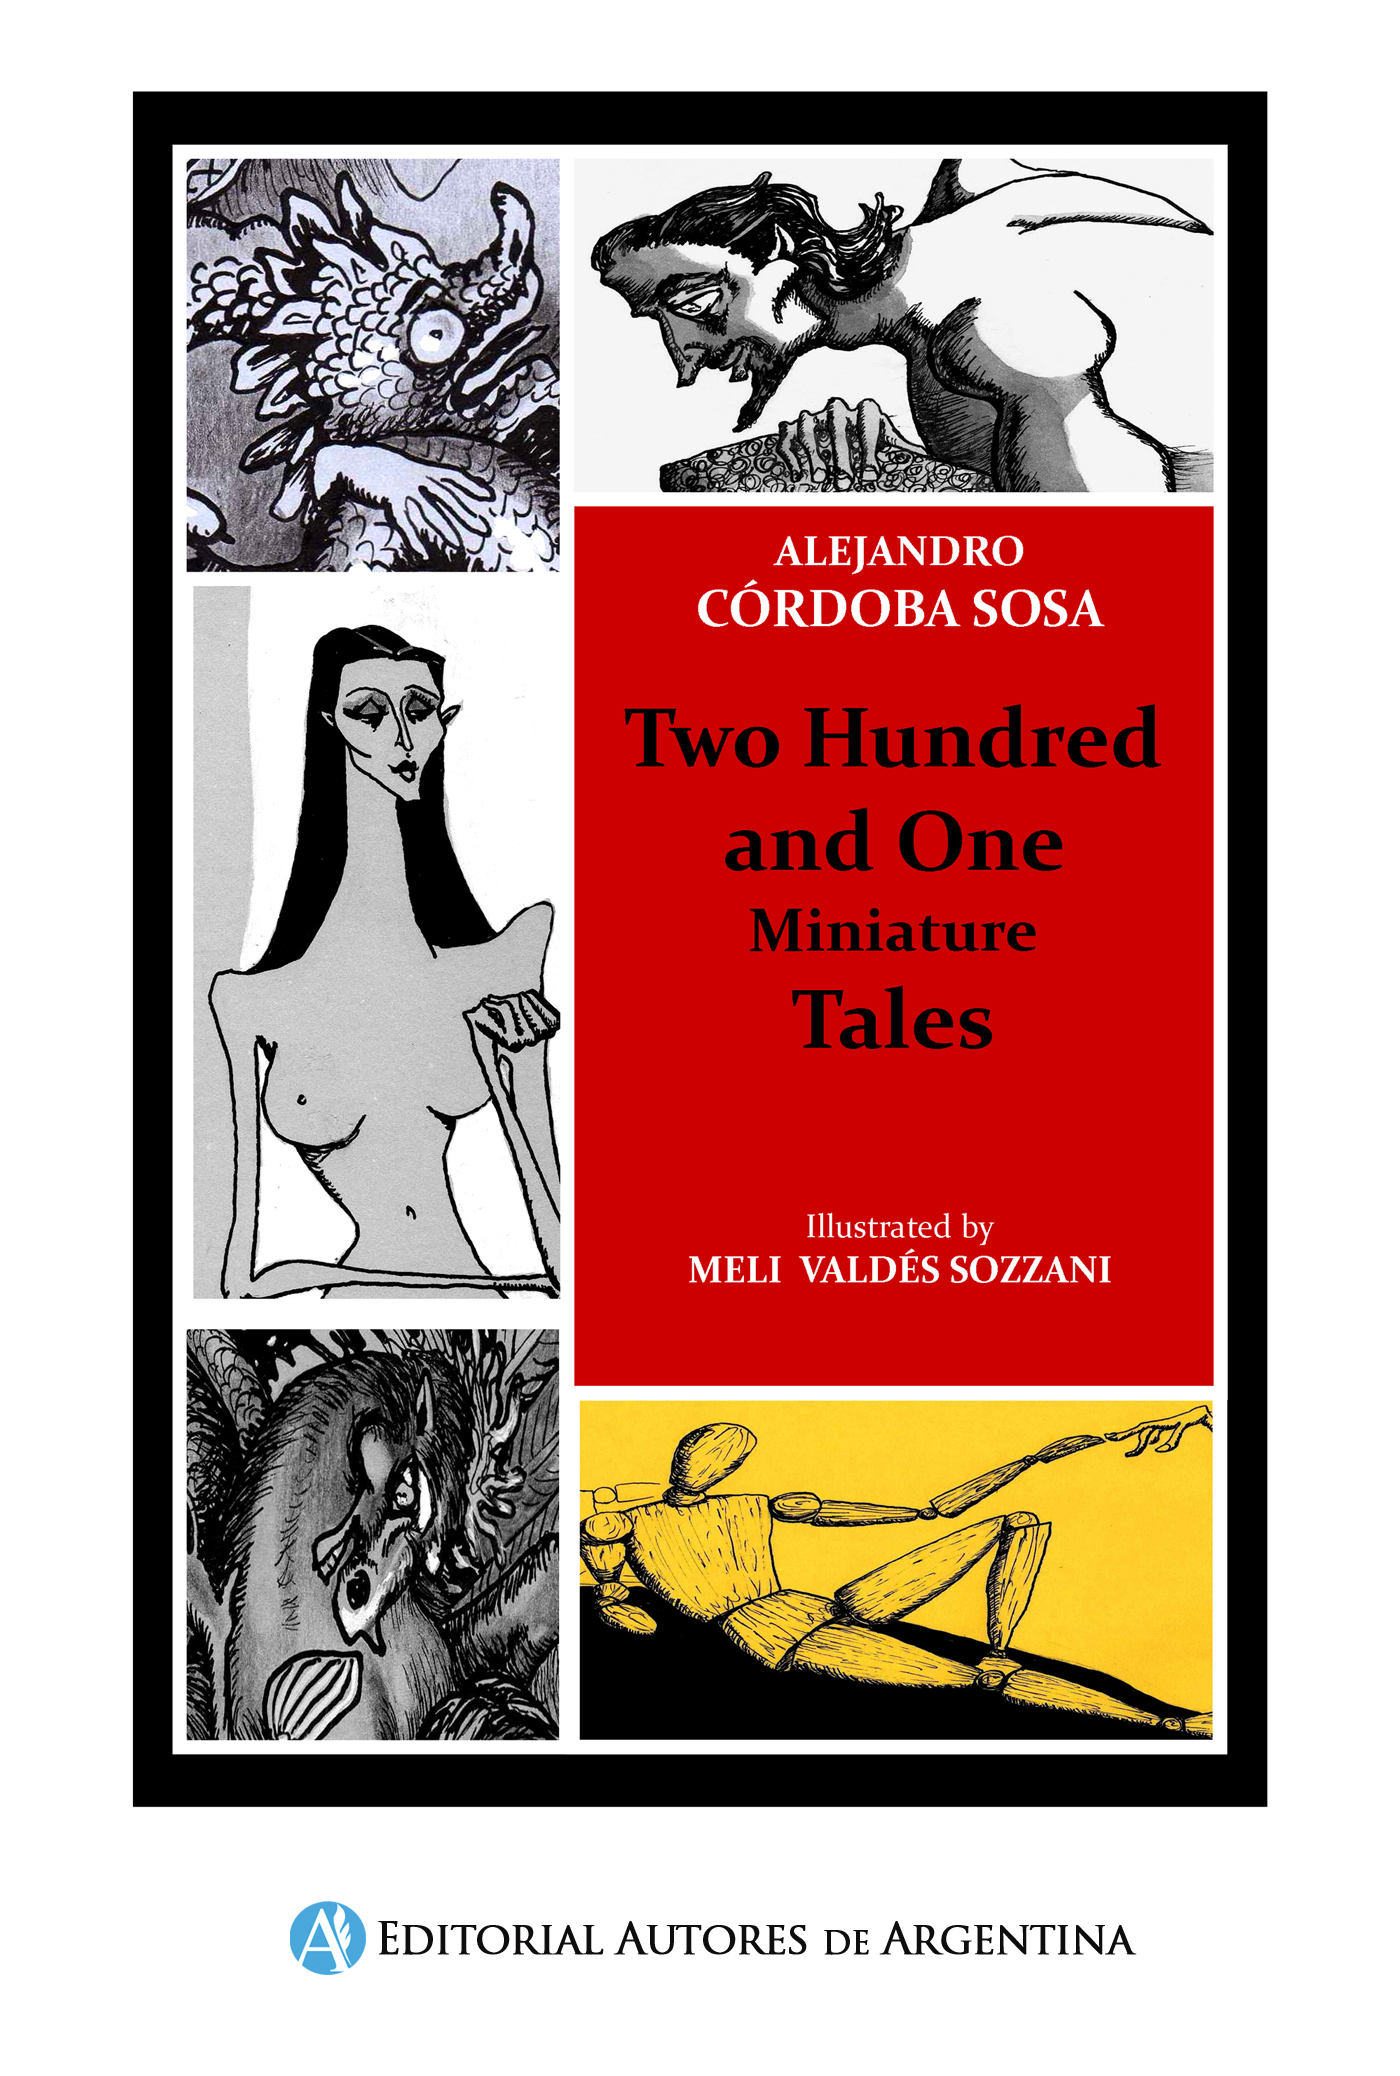 Two hundred and one miniature tales – Alejandro Eduardo Córdoba Sosa